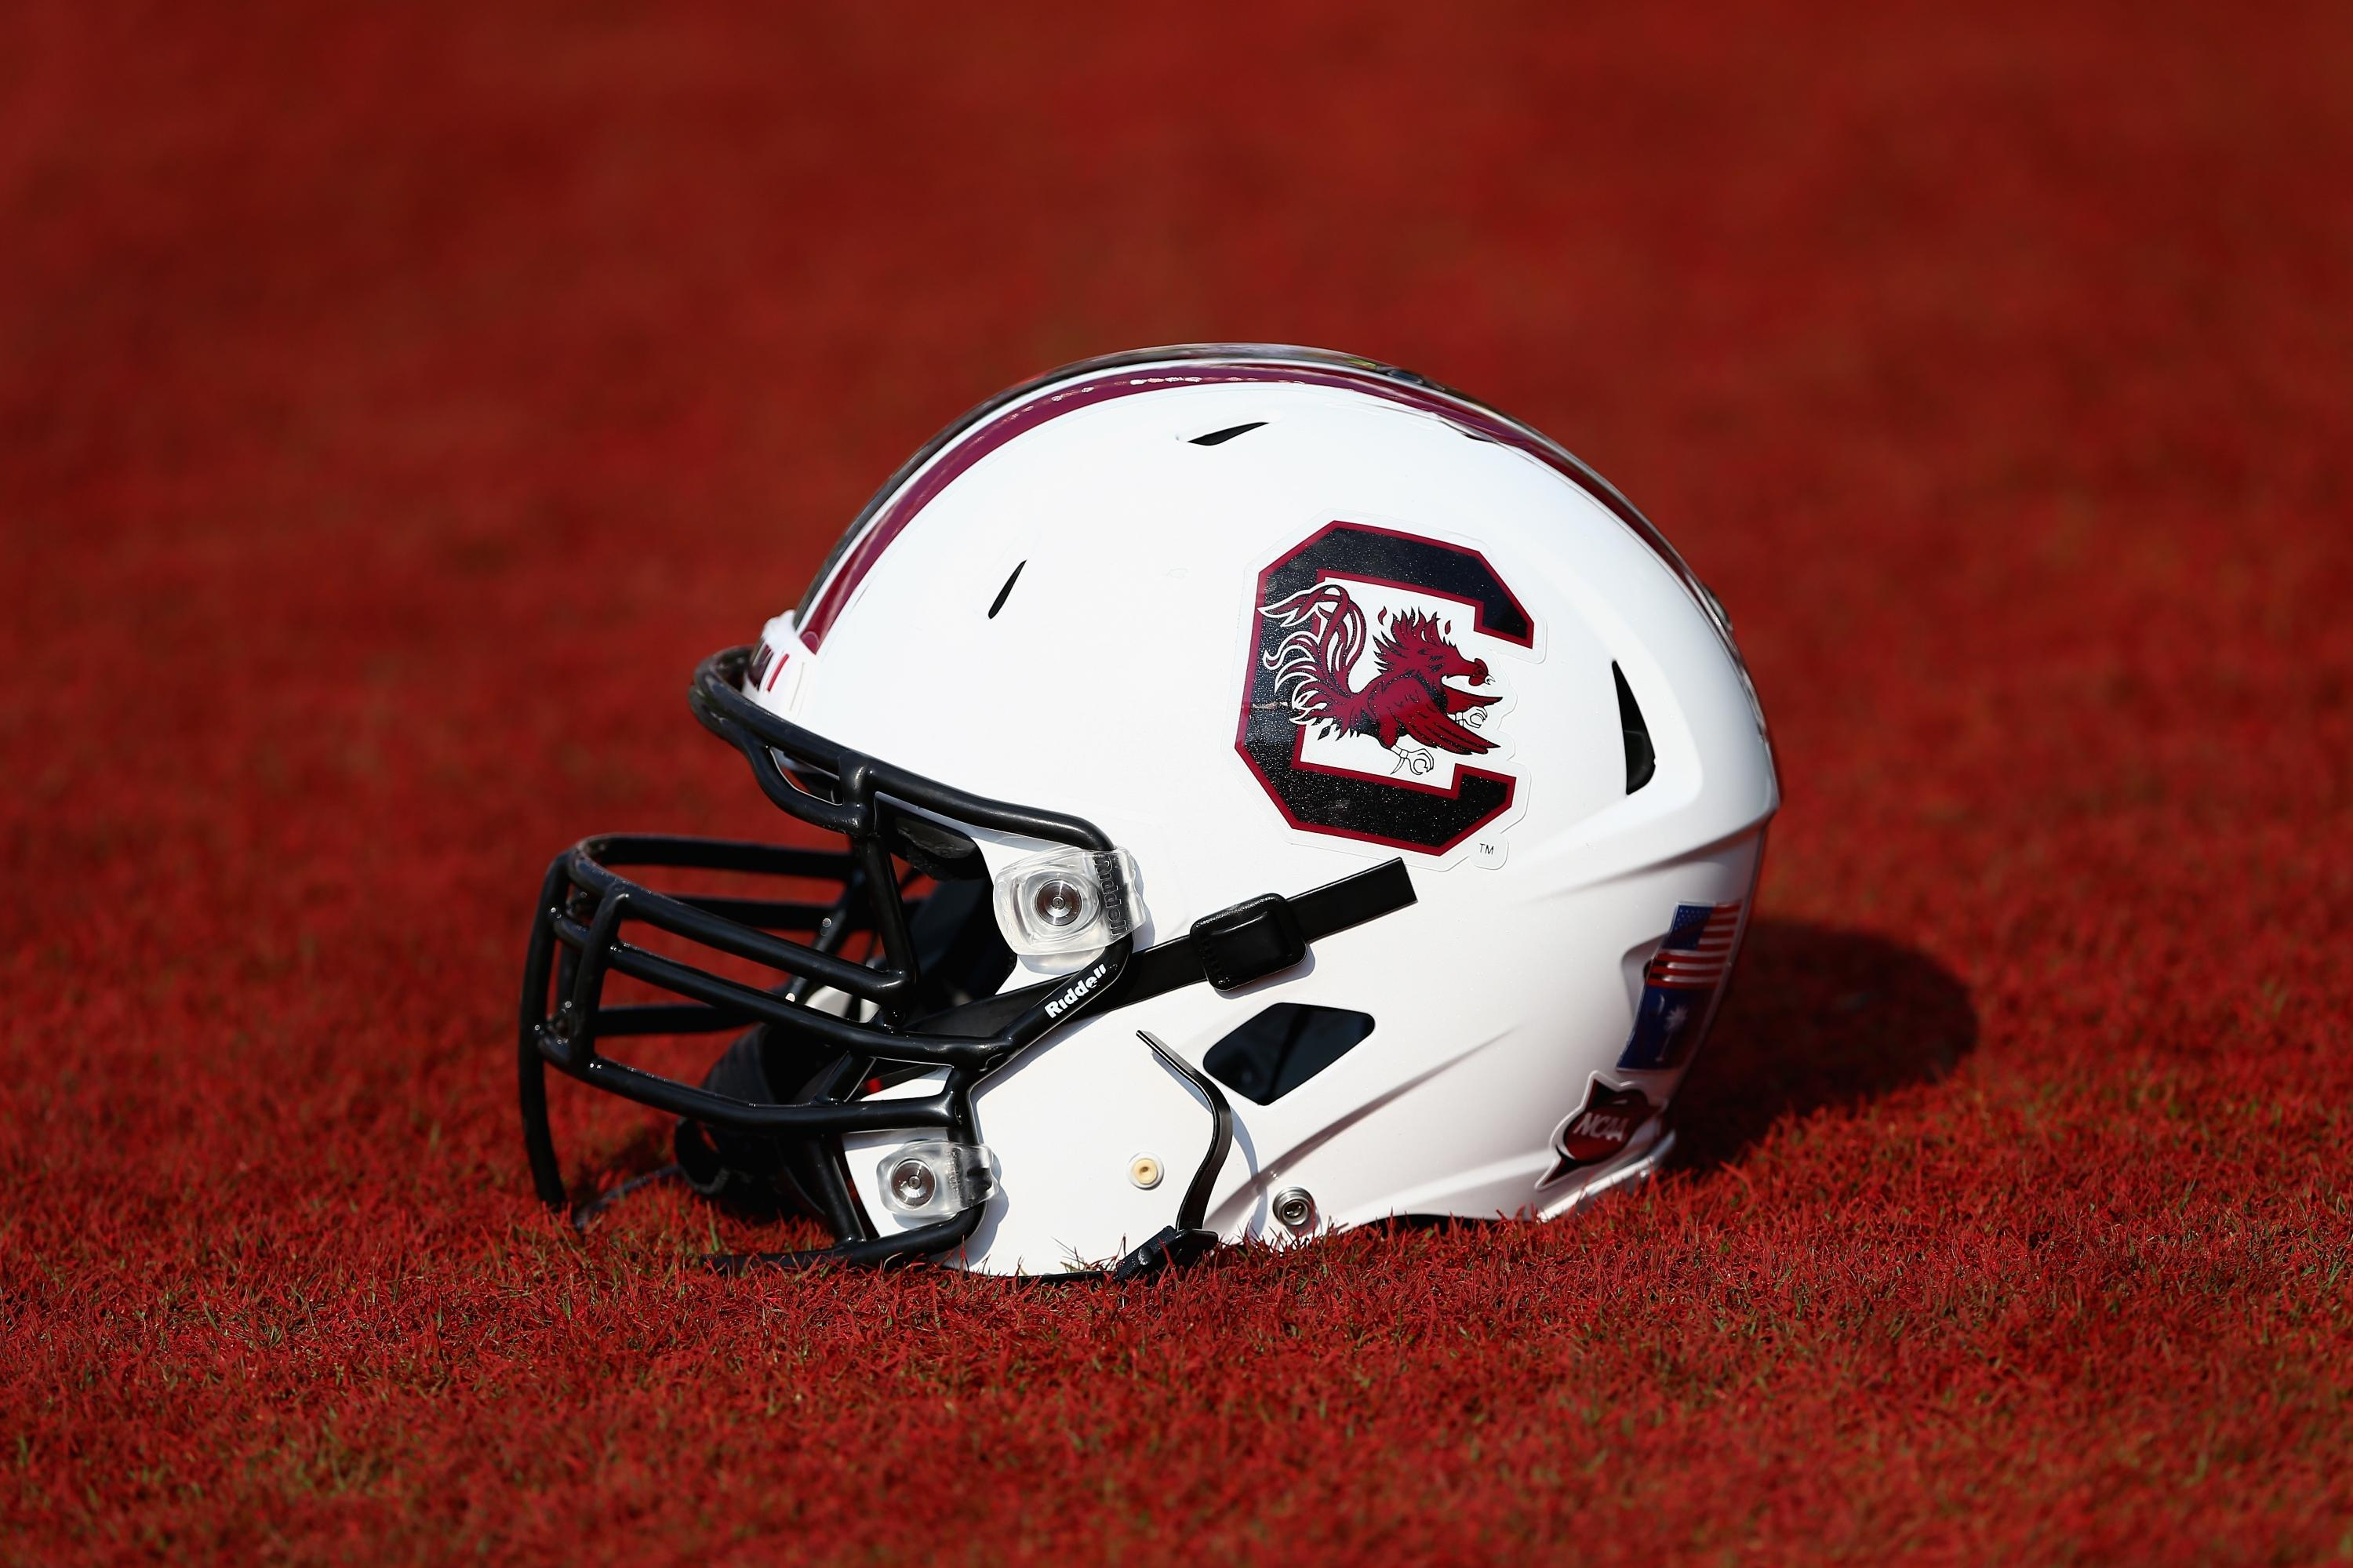 South Carolina loses 2 receivers to season-ending injuries